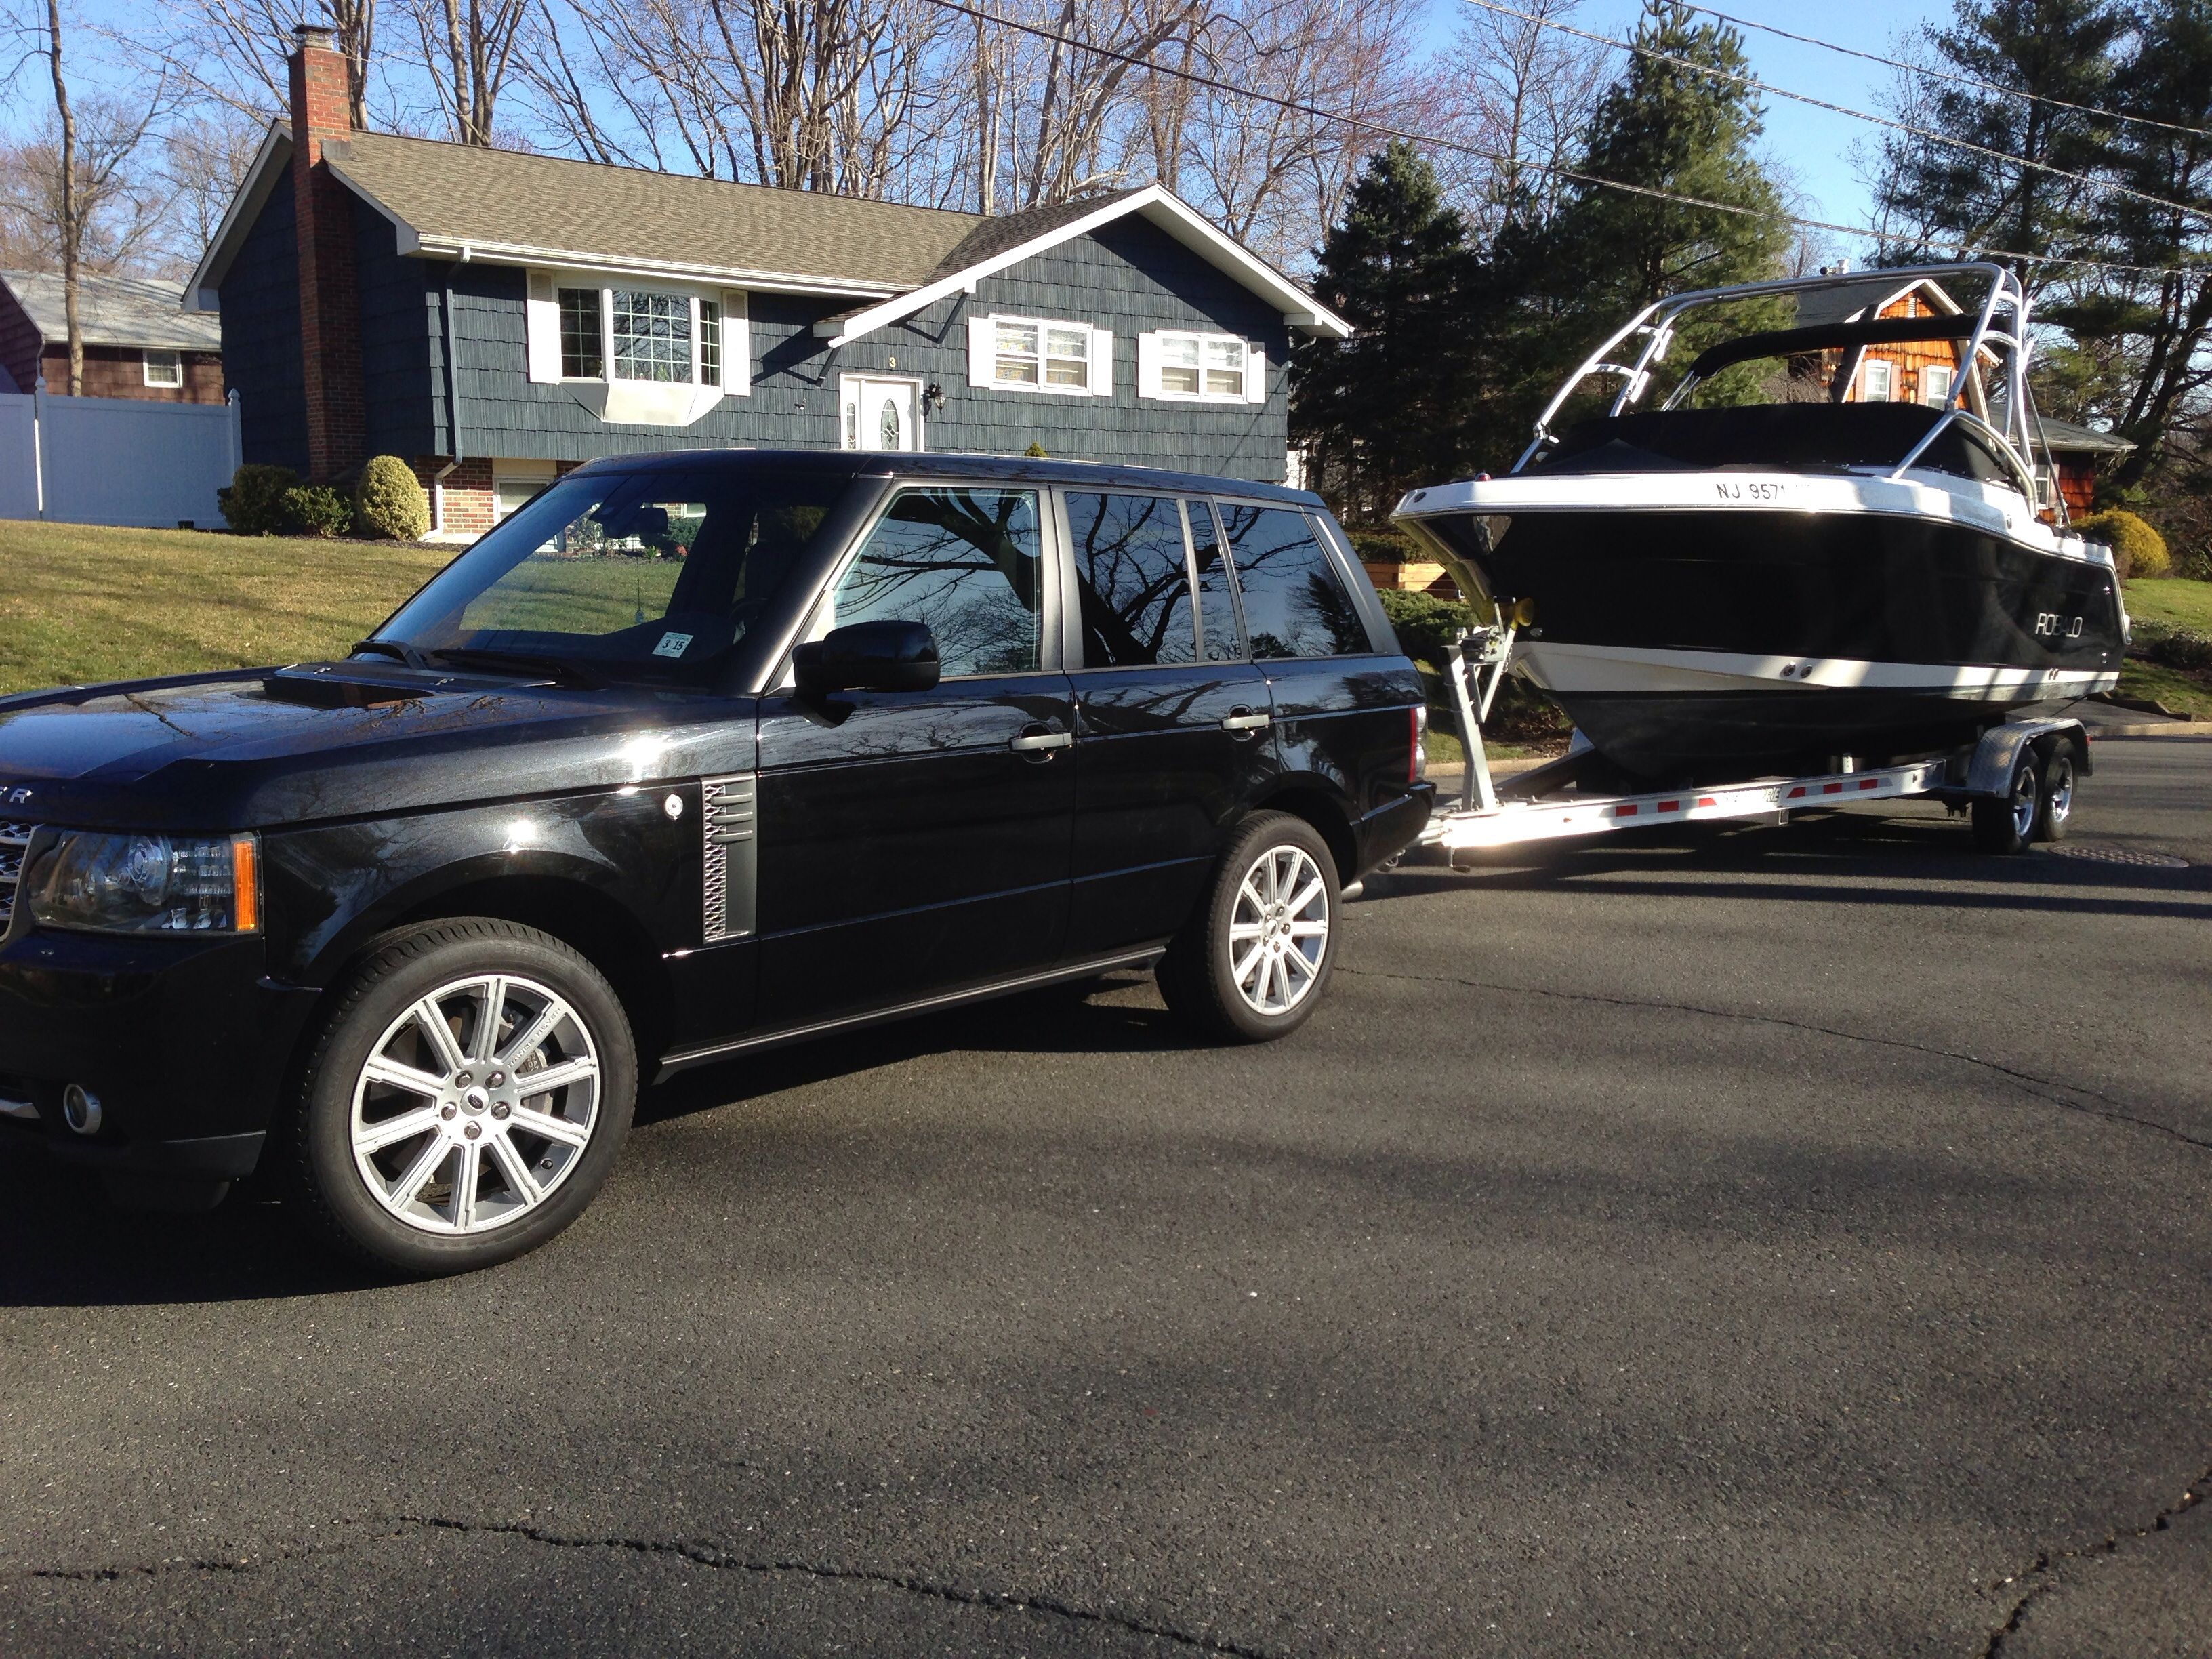 Range Rover Towing Boat Land Rover Pinterest Boats